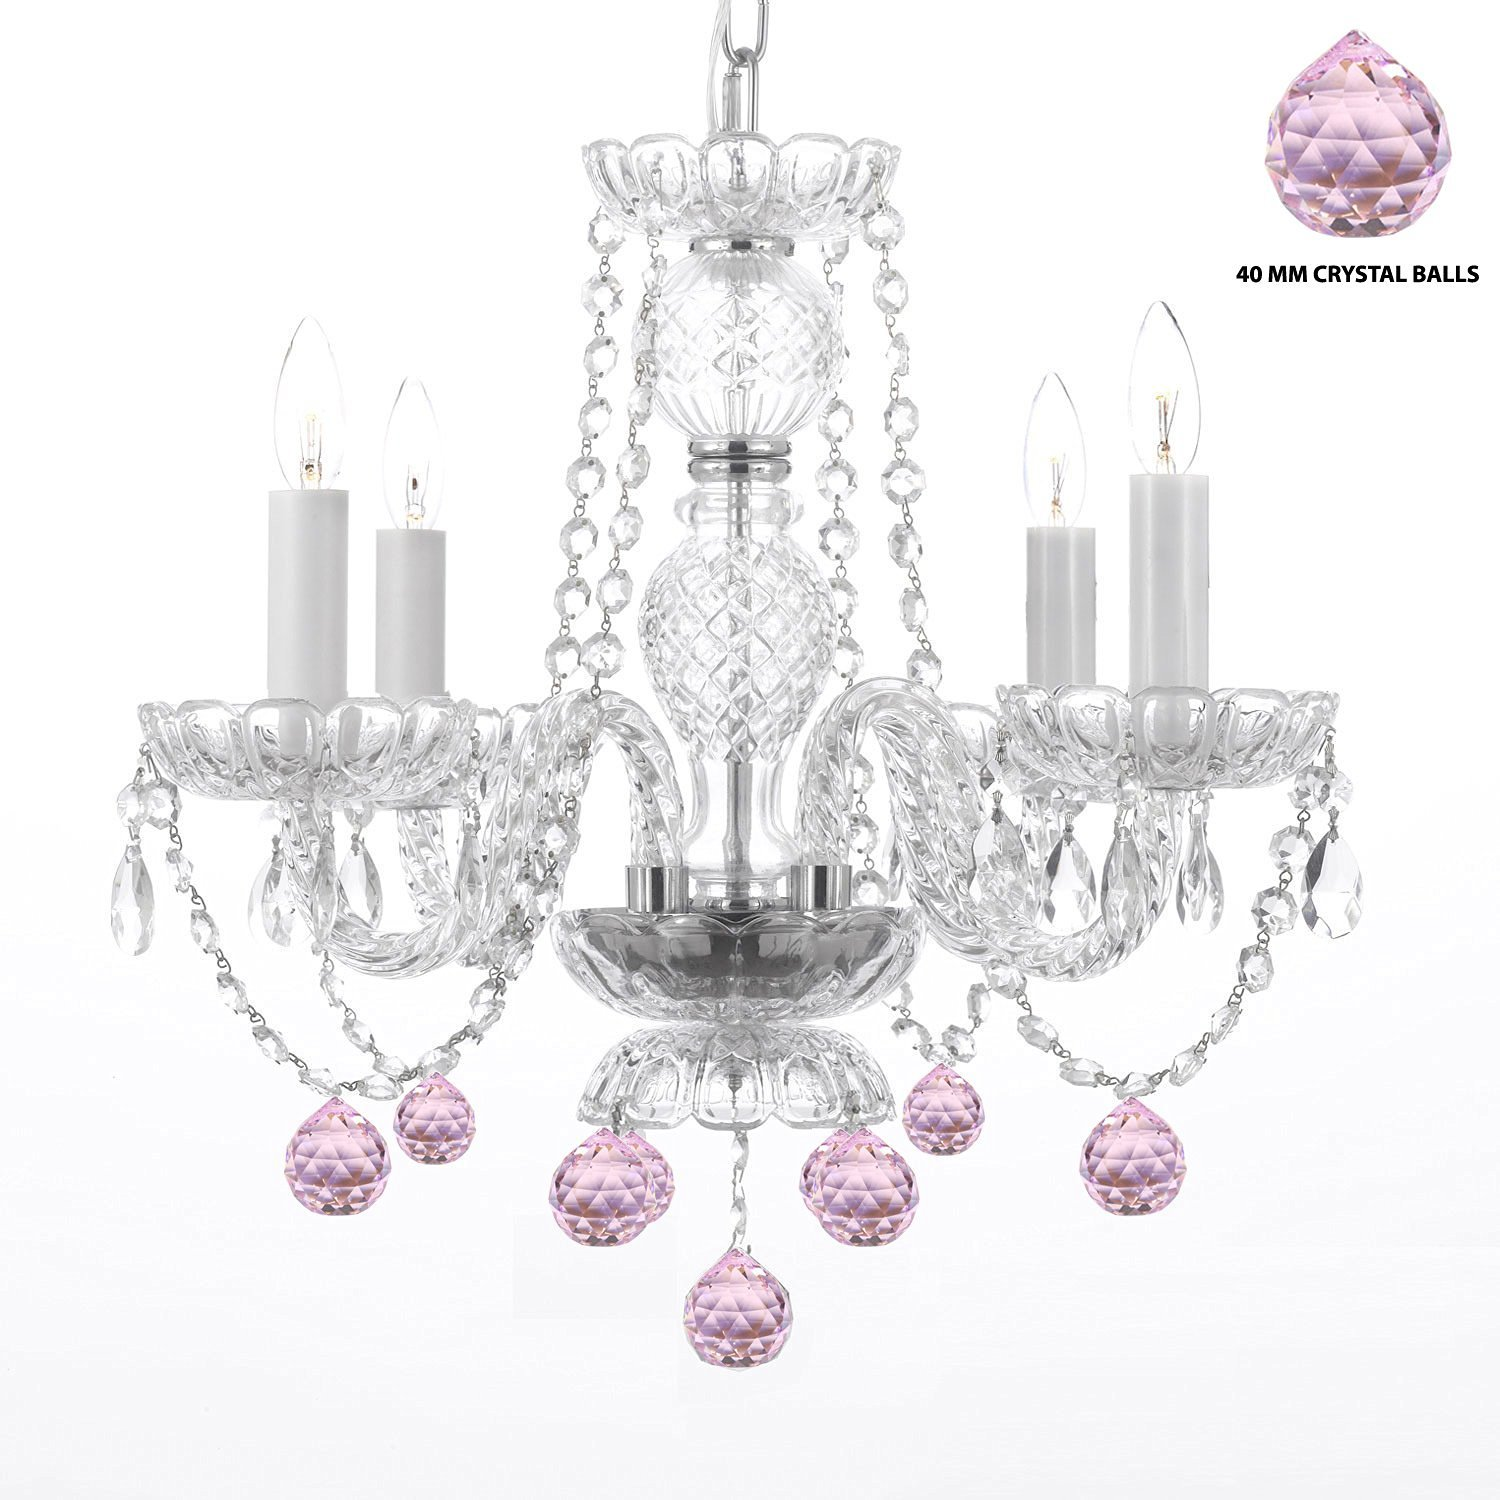 Swarovski Crystal Trimmed Chandelier! Chandelier Lighting W/ Crystal Pink Balls! H 17'' W17'' - Perfect For Kid'S And Girls Bedroom!